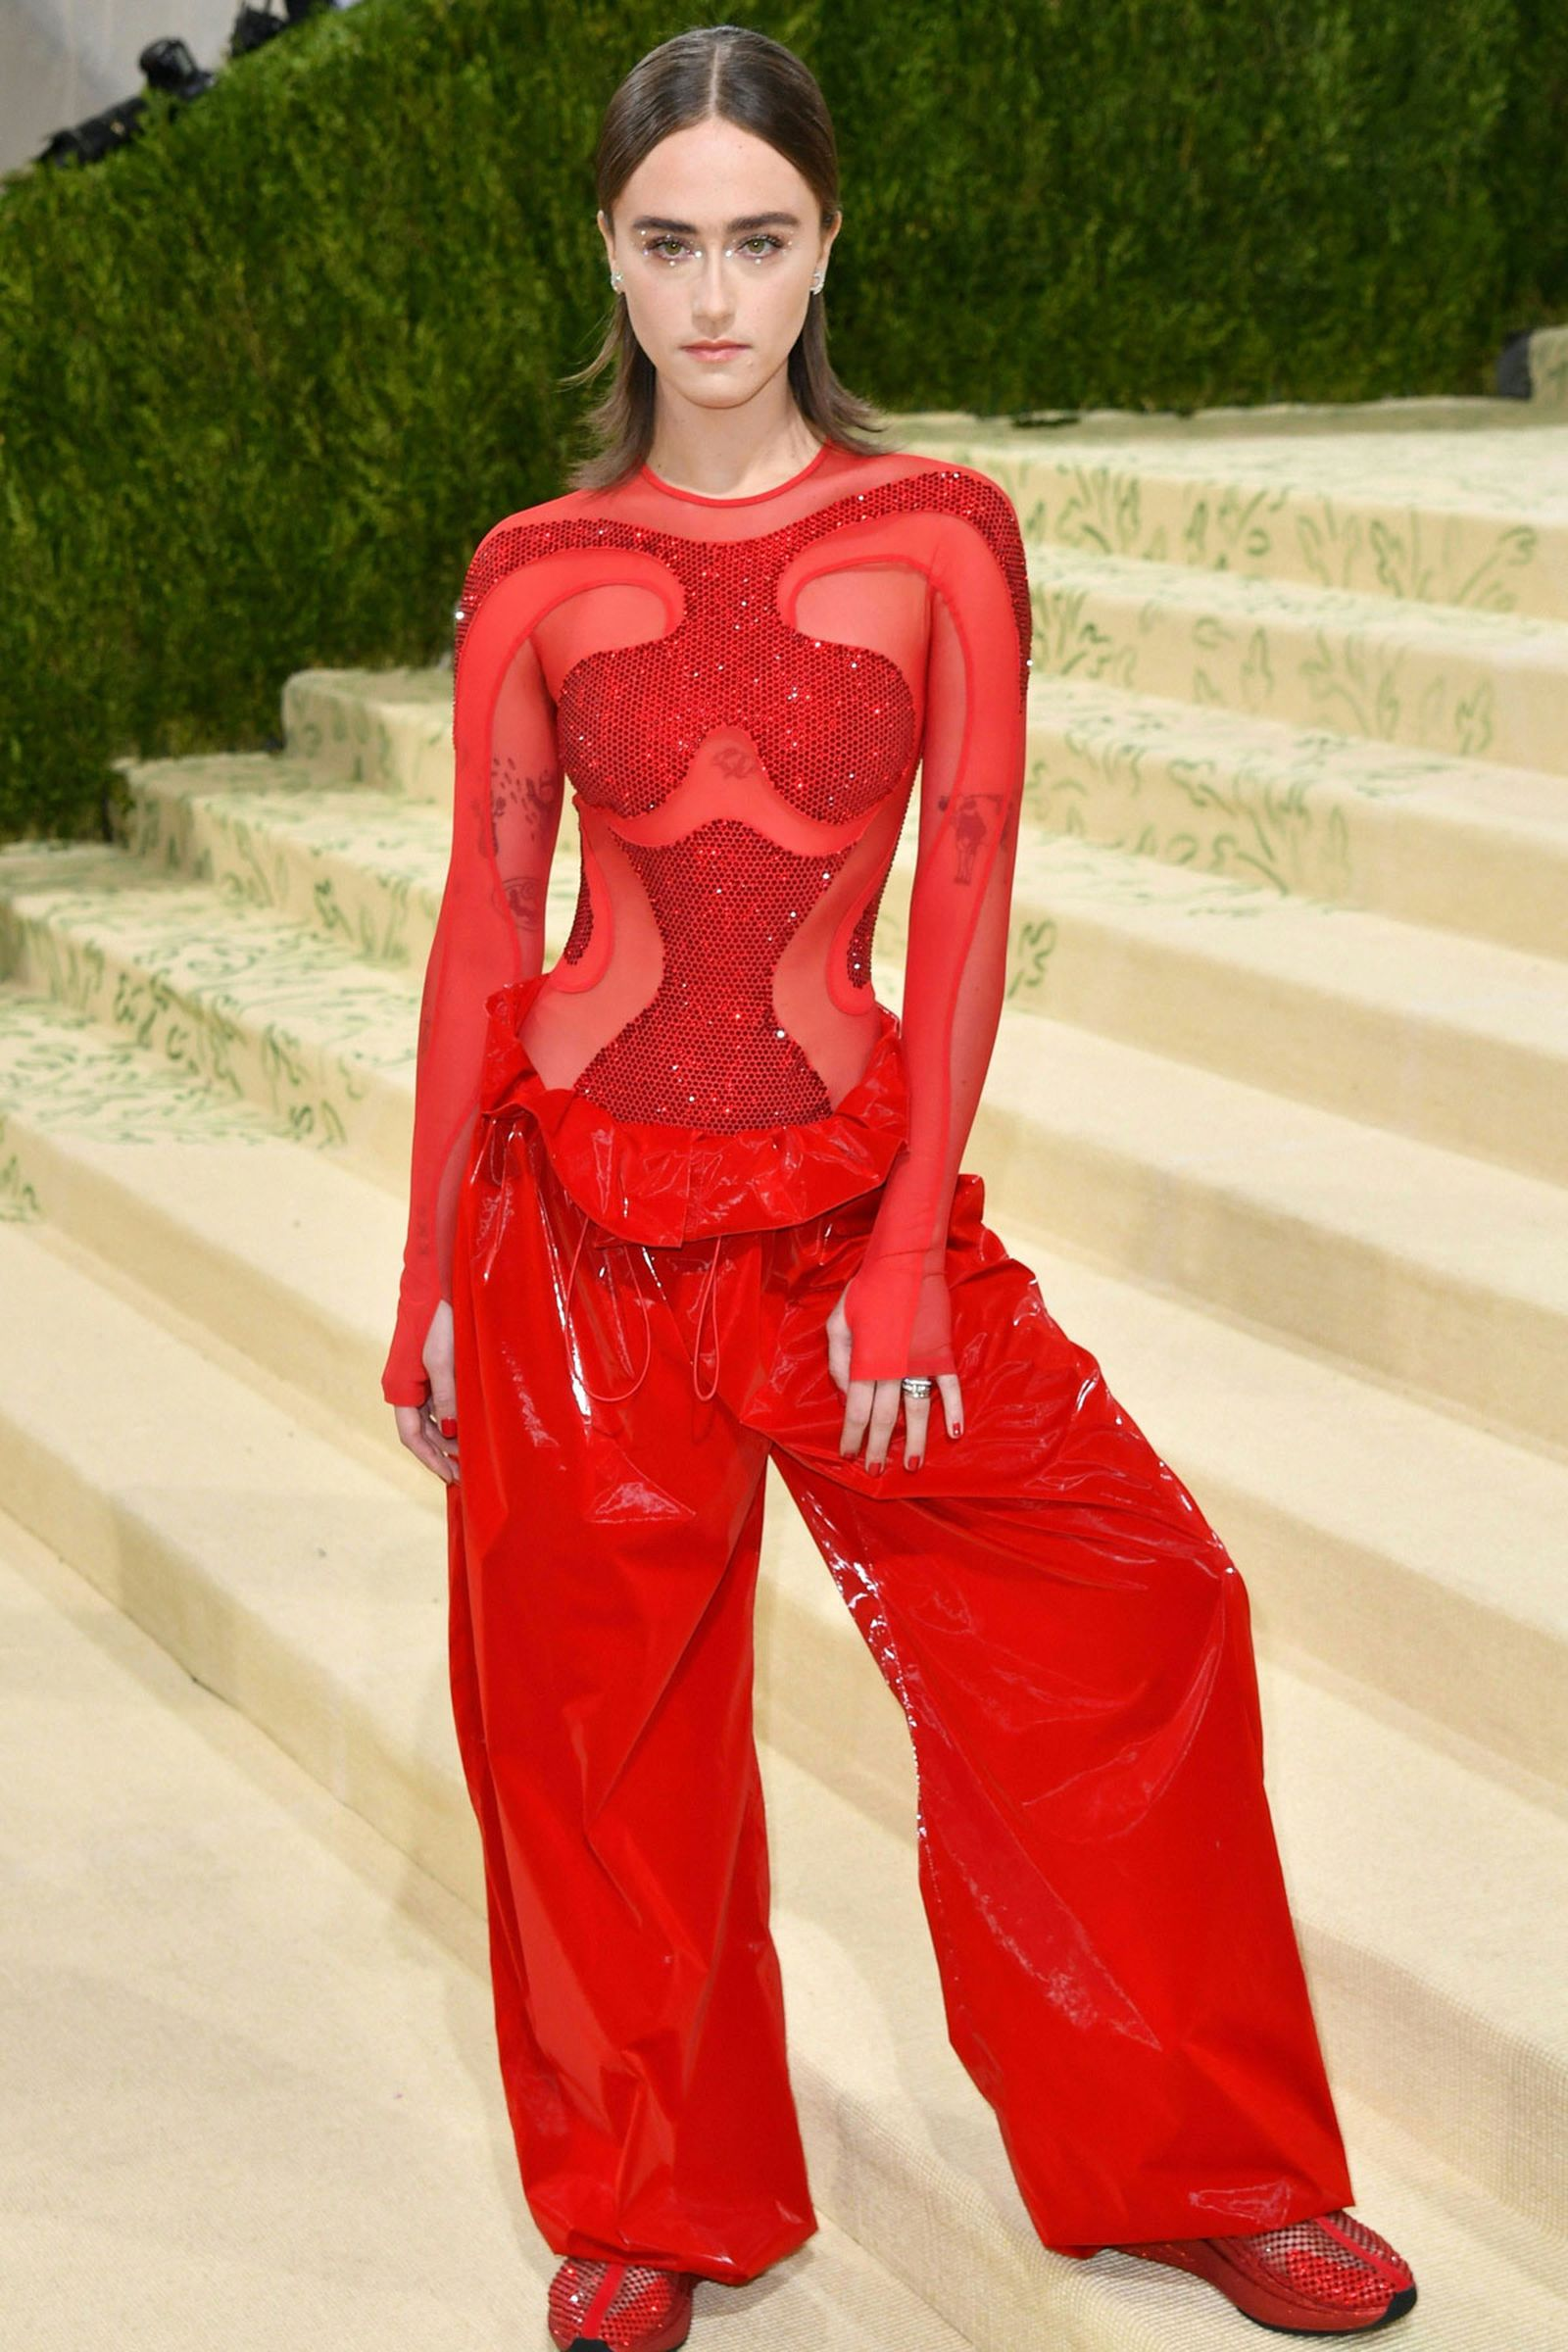 met gala 2021 celebrity style looks best outfits red carpet worst